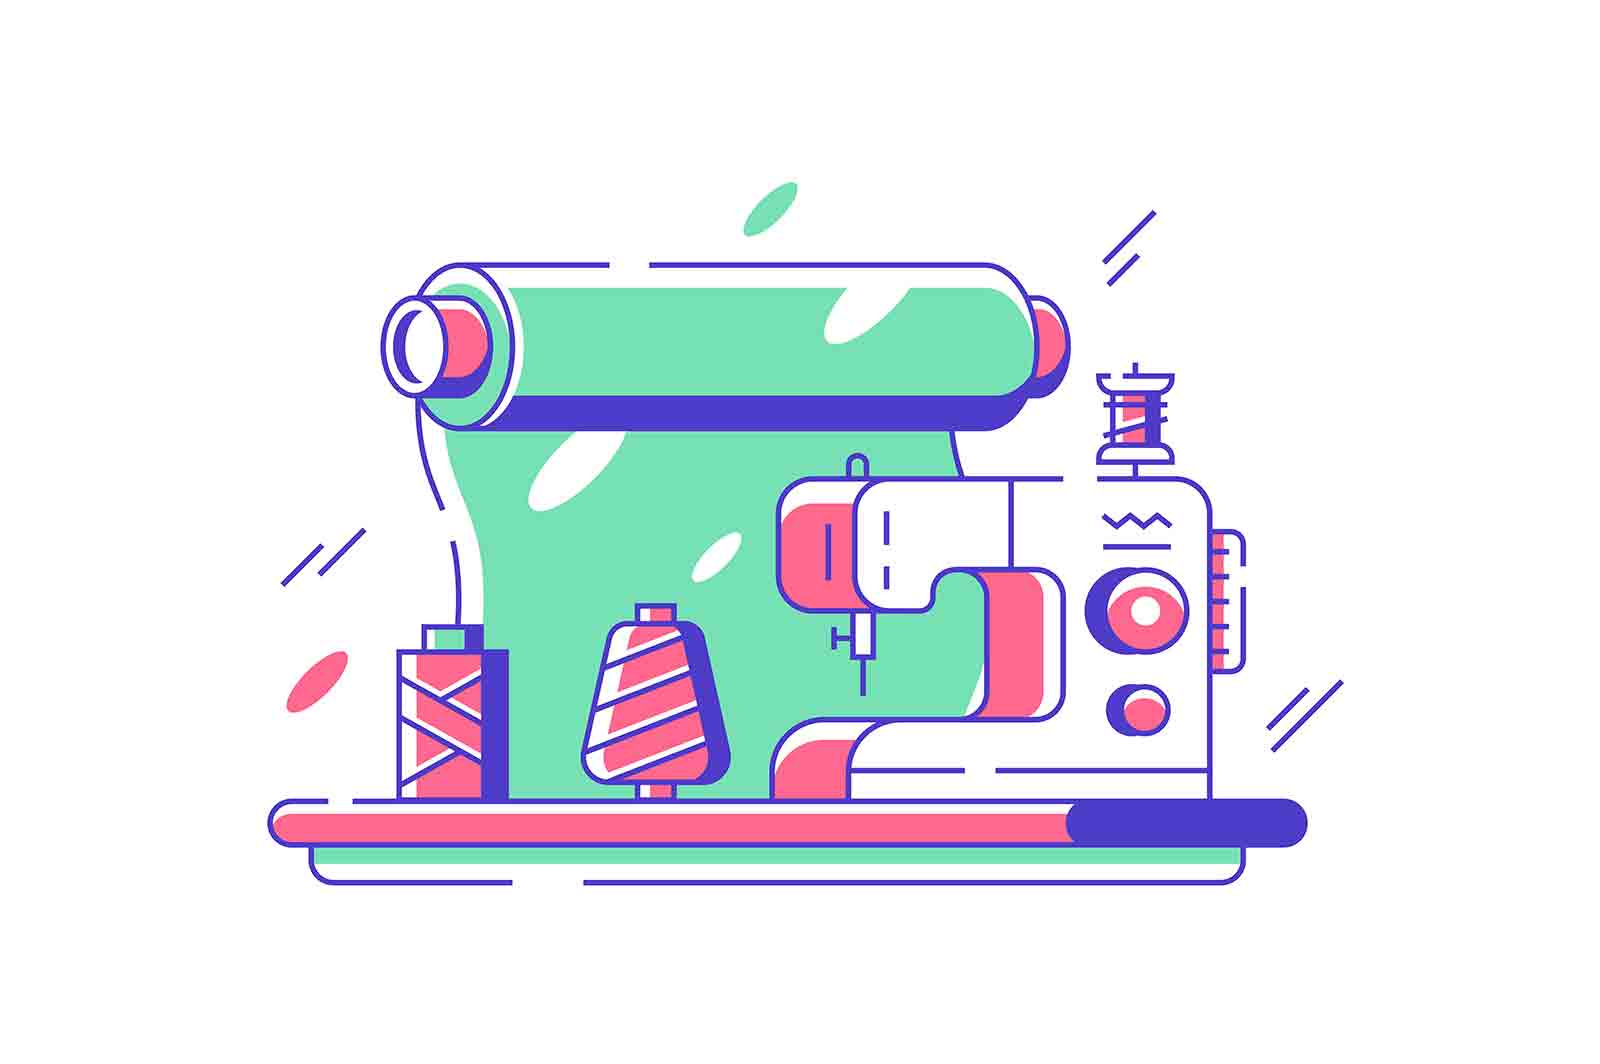 Sewing machine for fabrics vector illustration. Electric equipment for creating clothes flat style. Fashion industry and handmade concept. Isolated on white background